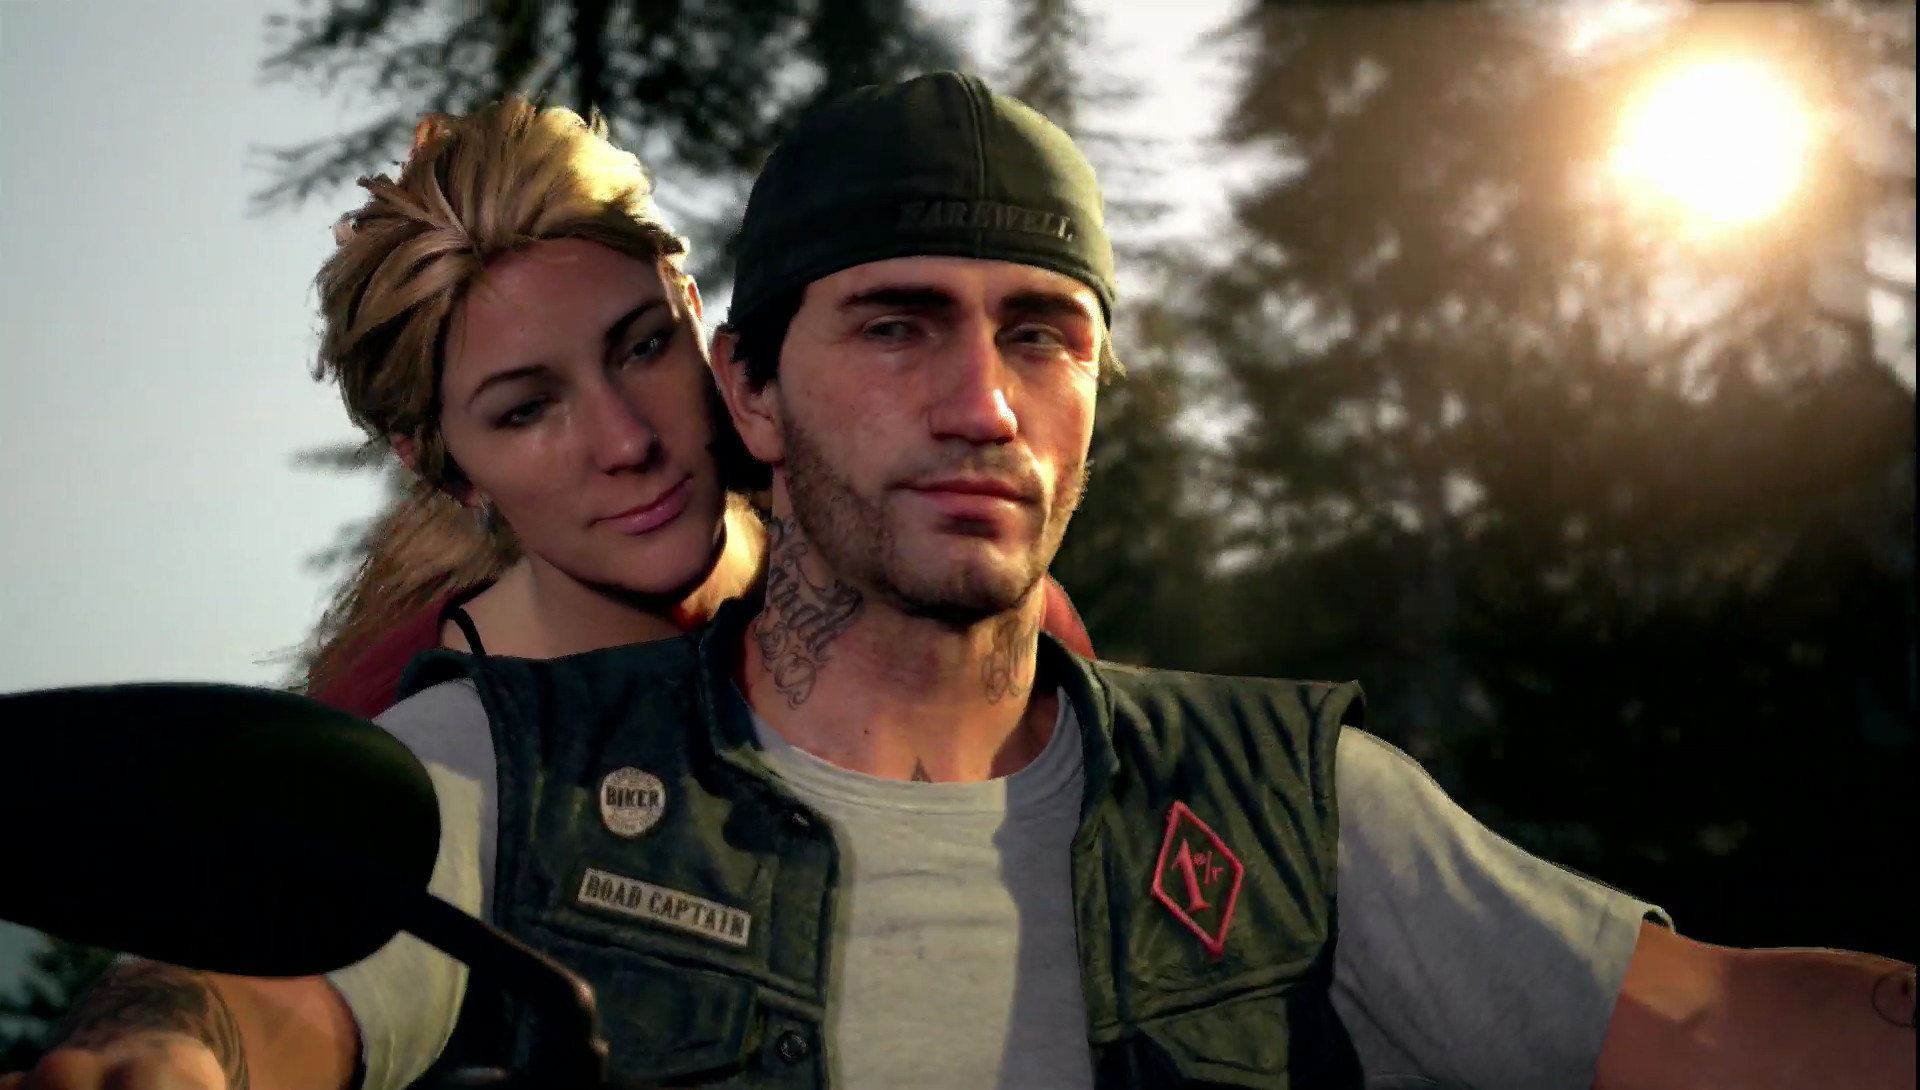 Days Gone - close-up of biker on motorcycle with woman behind him